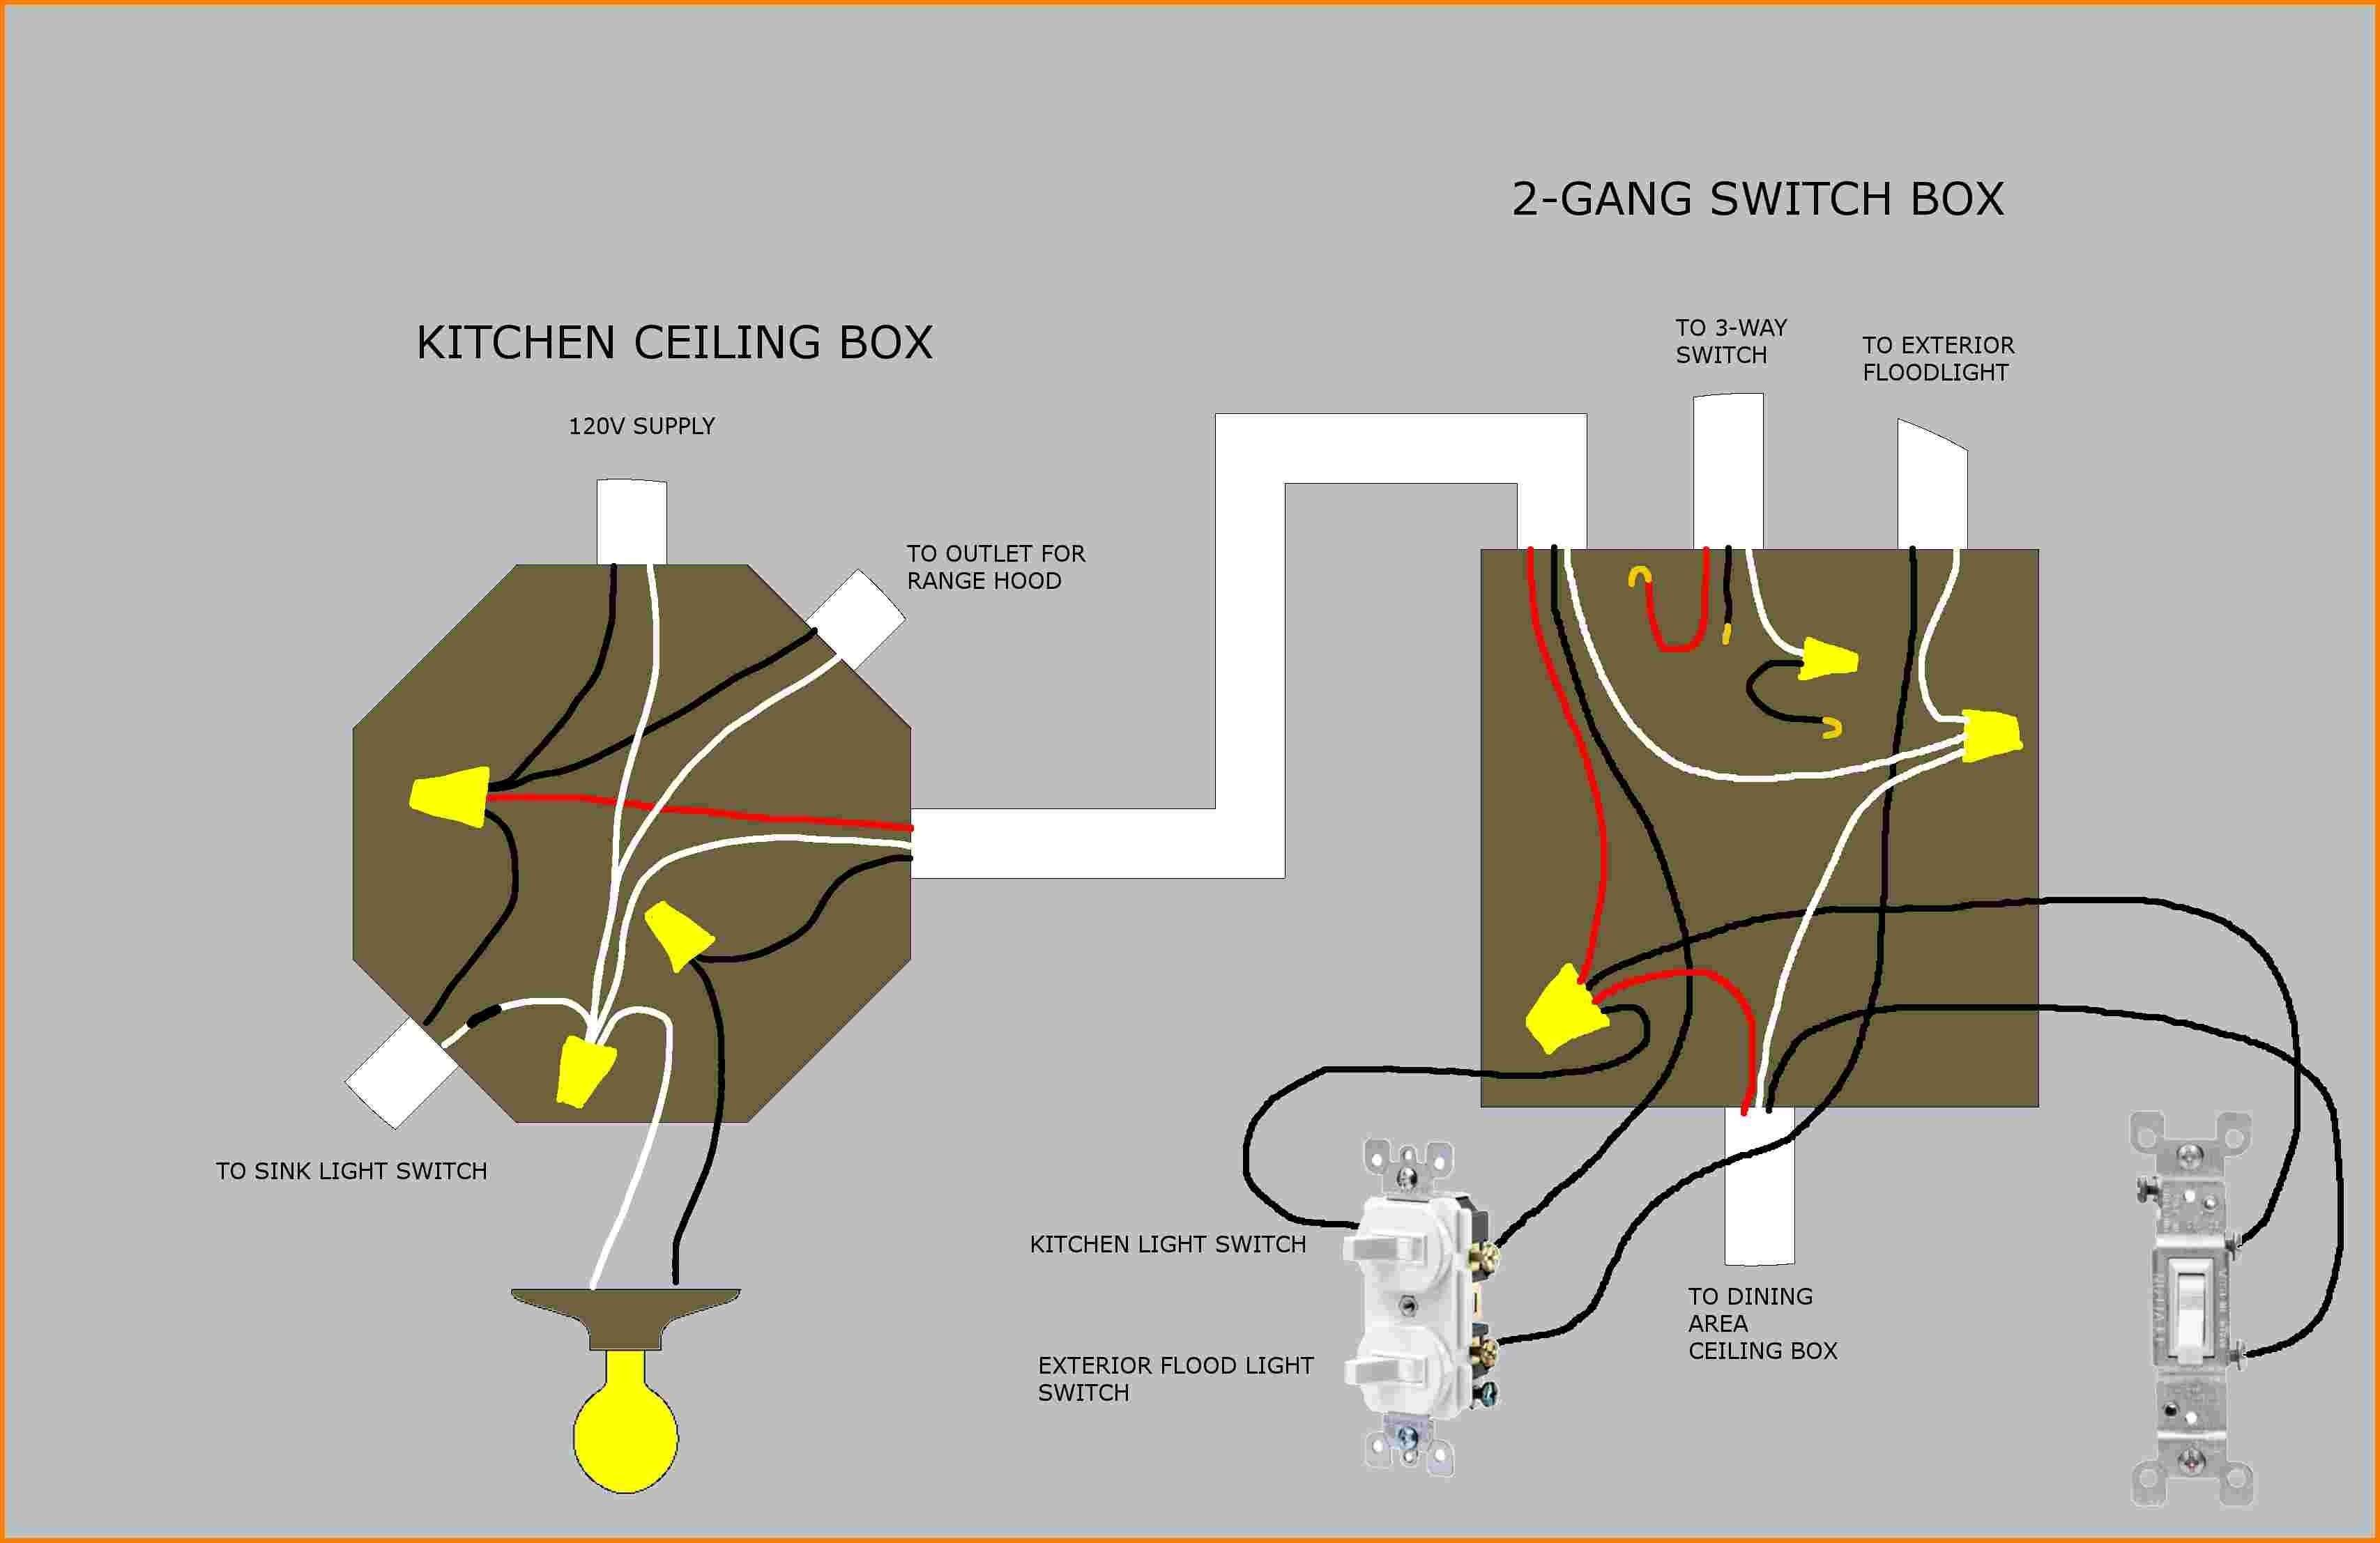 Wiring Diagram 3 Way Switch Unique Wiring Diagram for